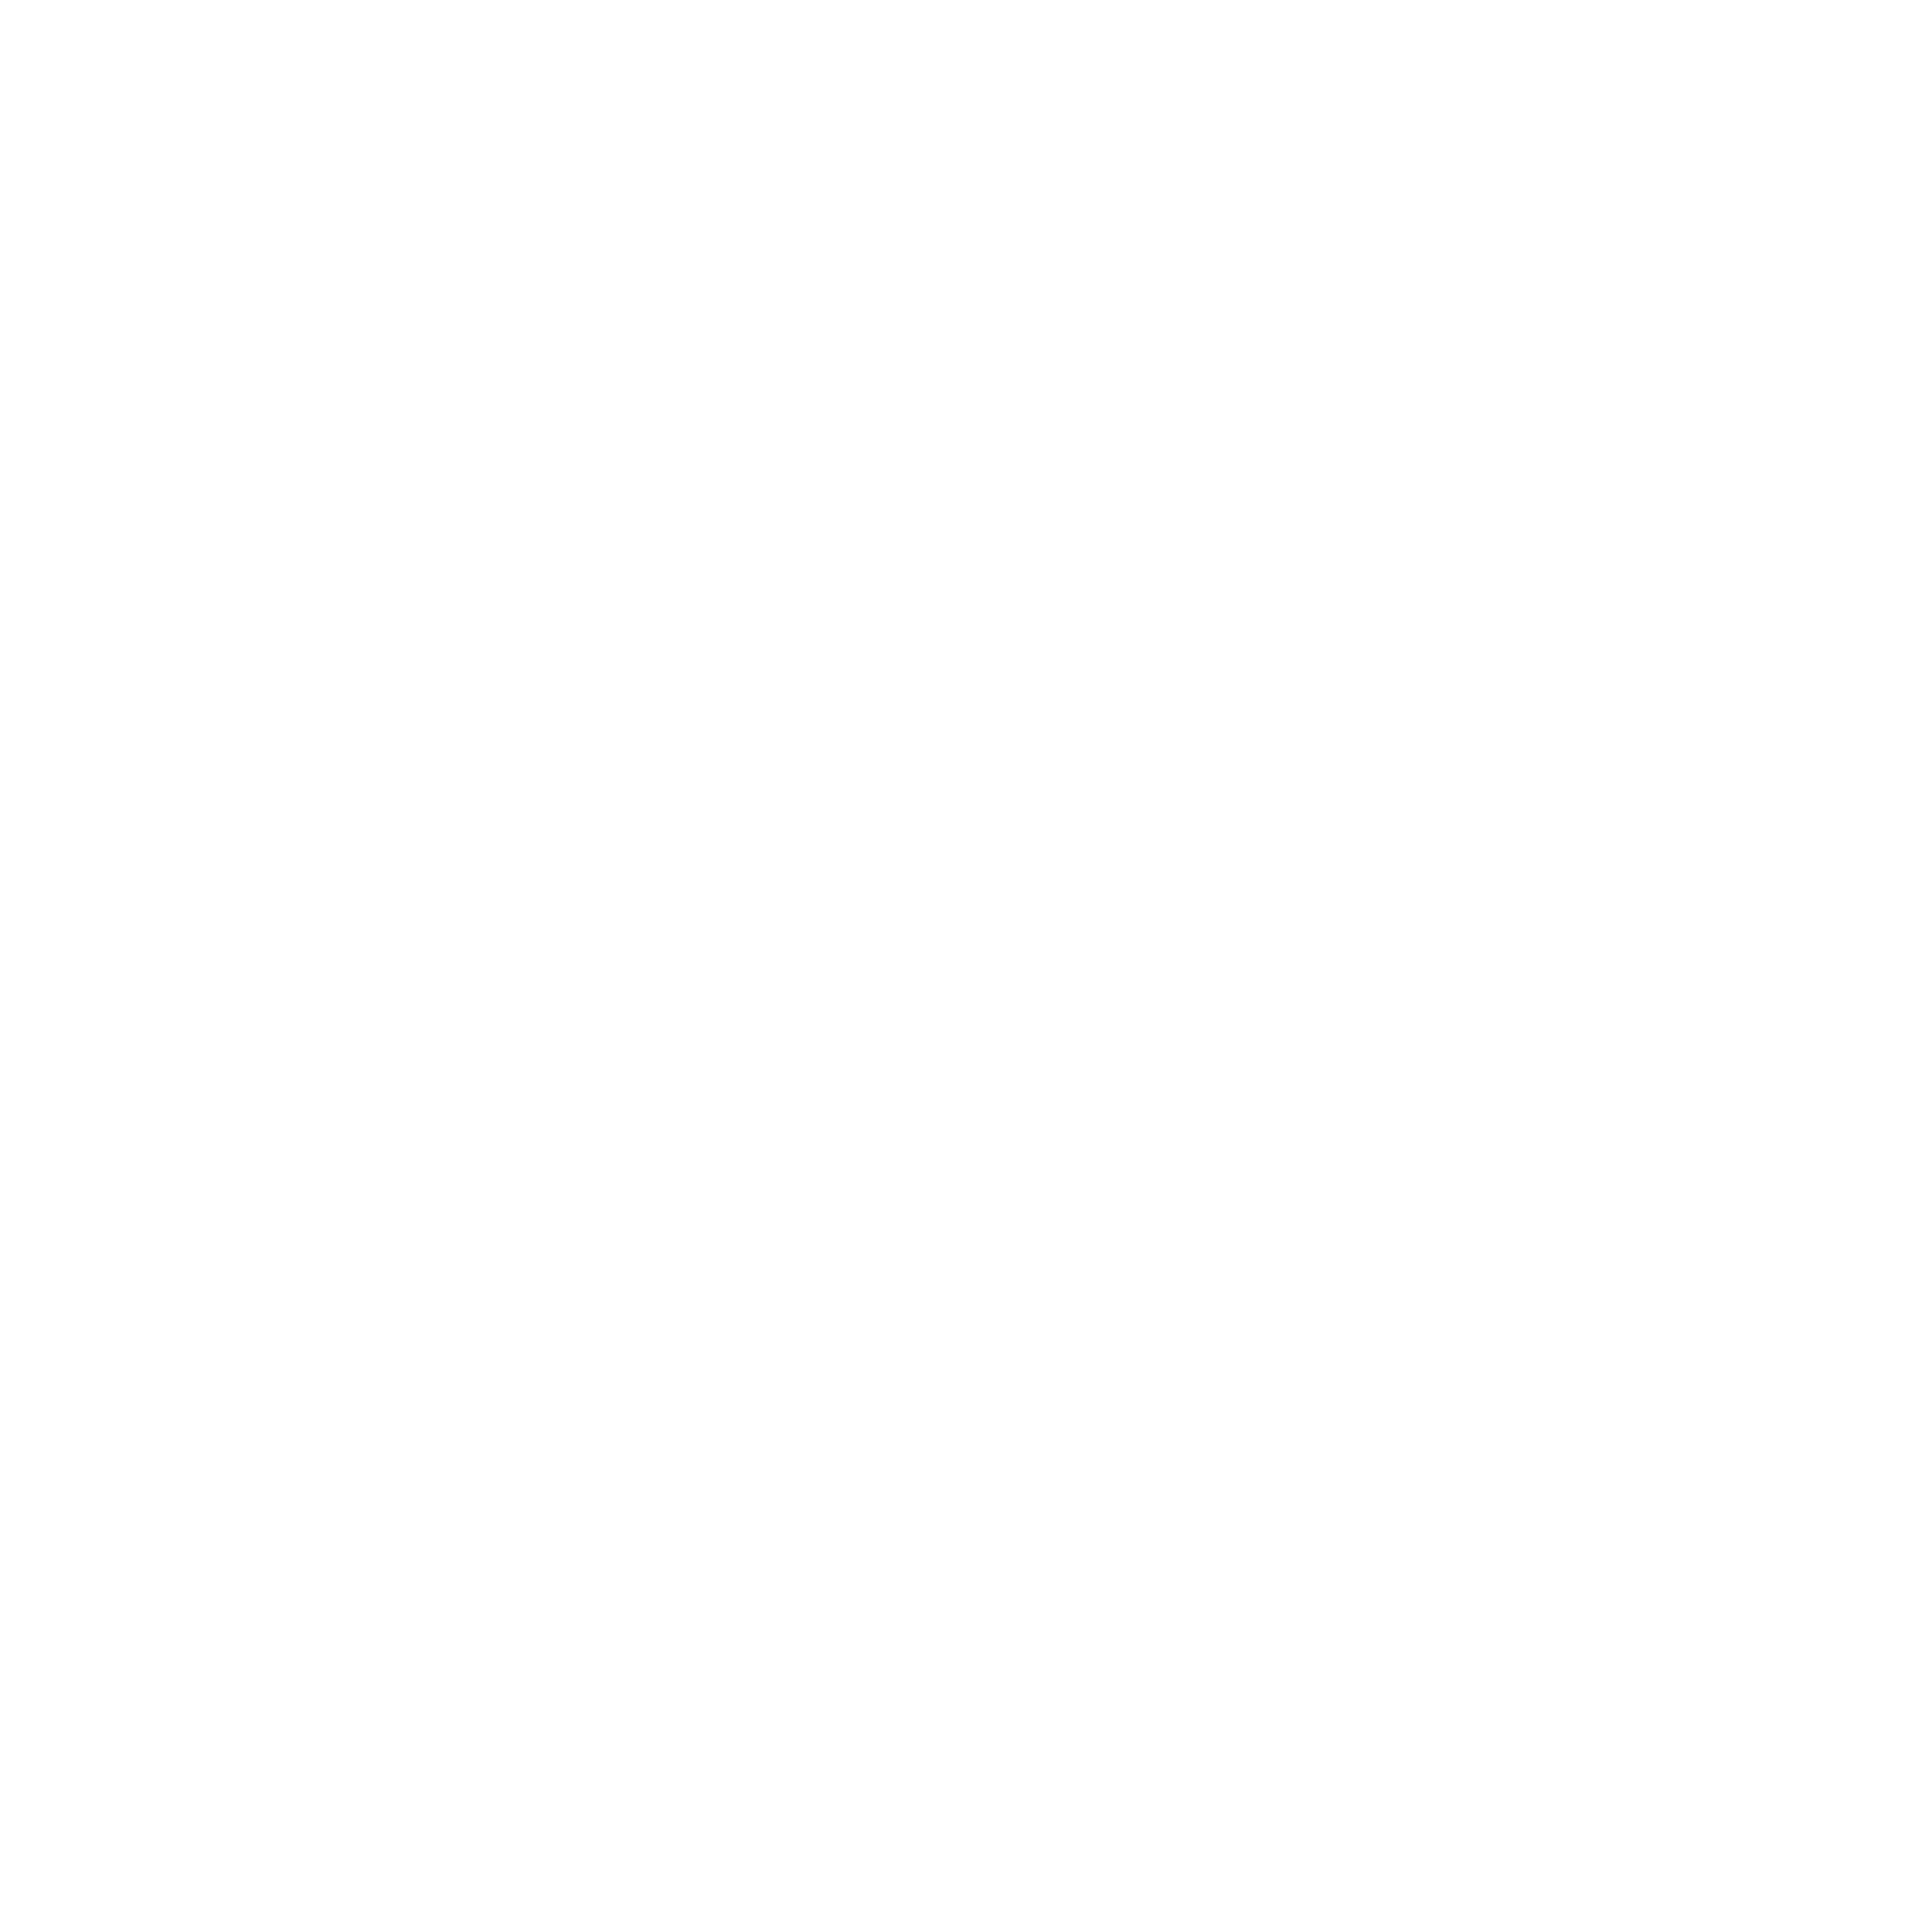 toyota-1-logo-black-and-white.png